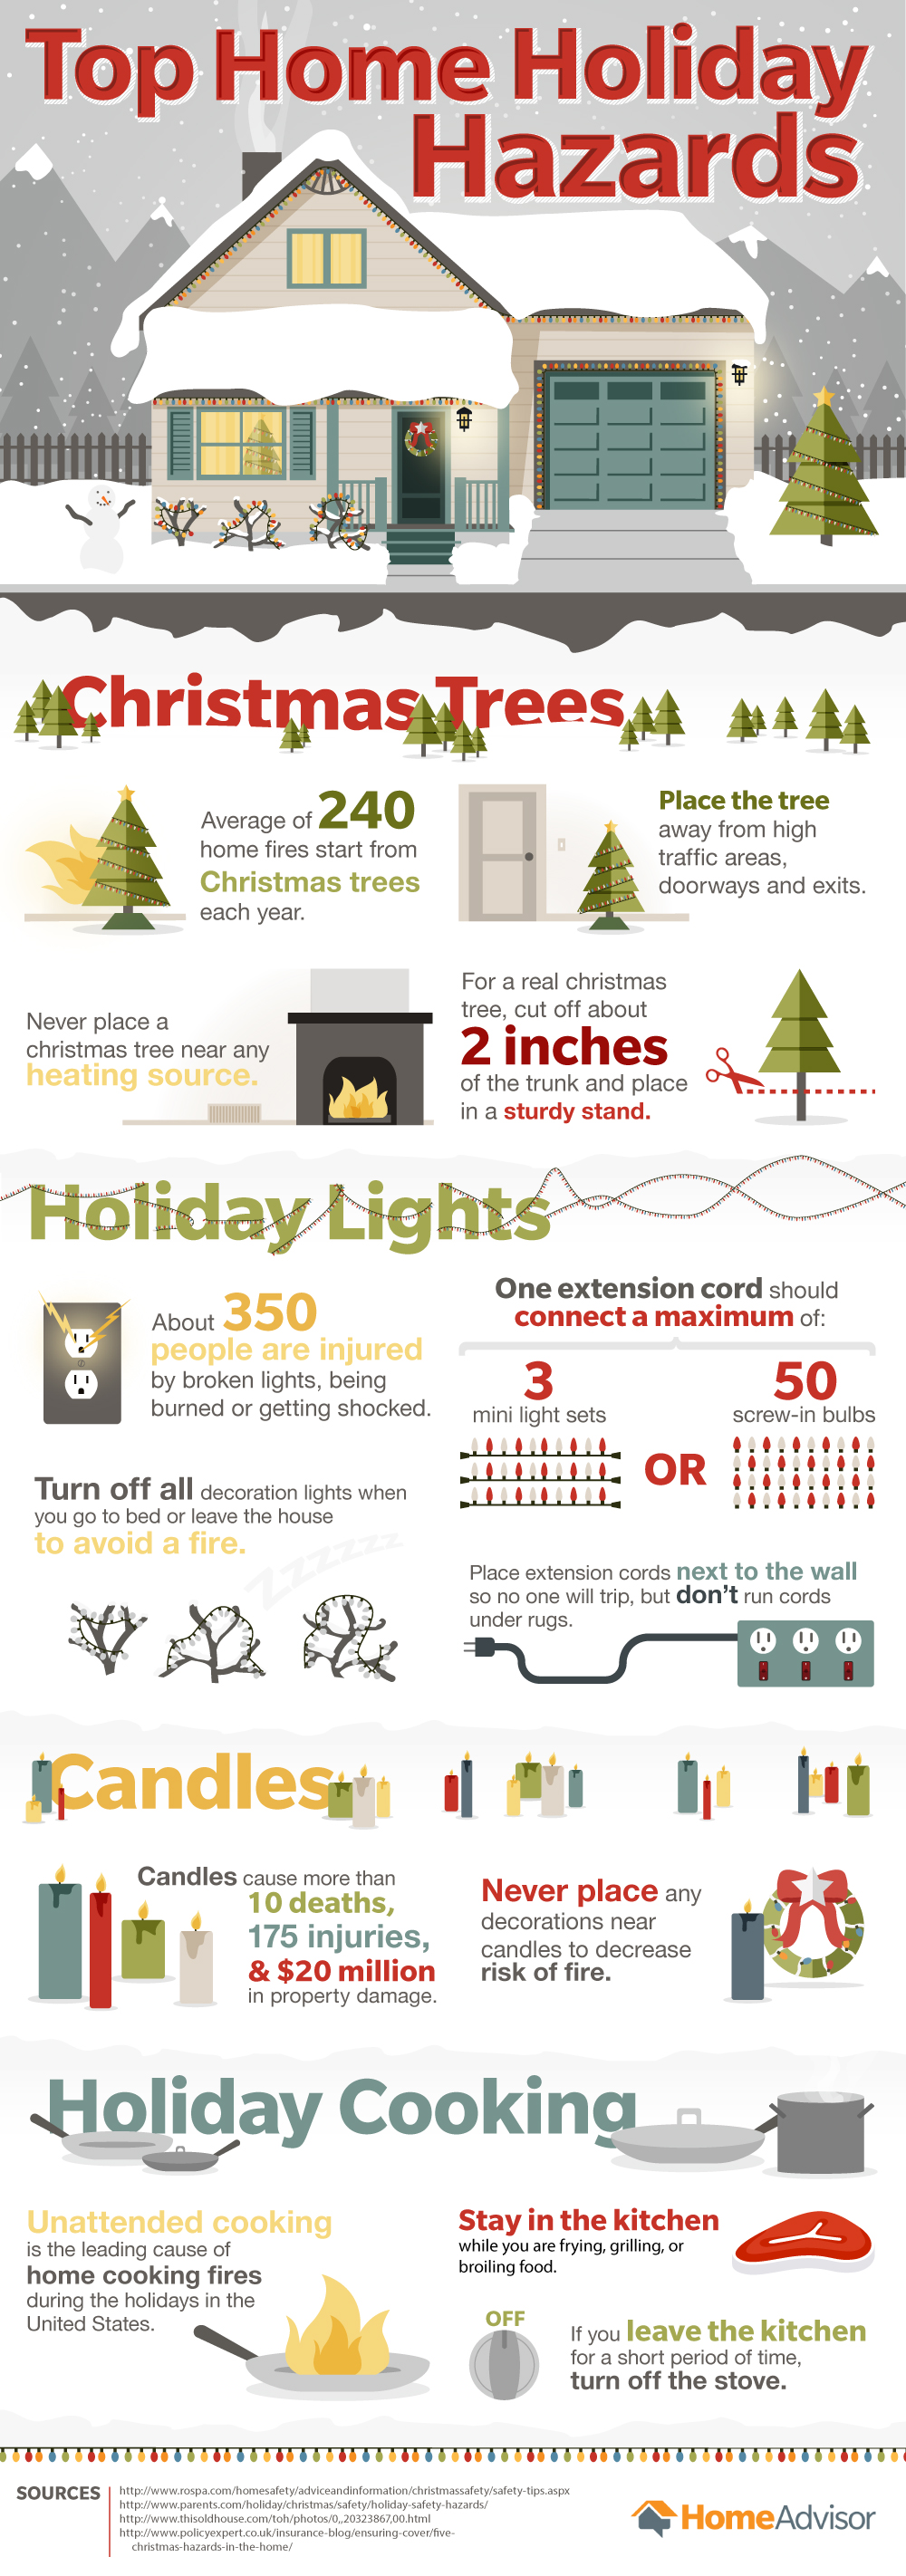 Preventing Common Holiday Home Hazards